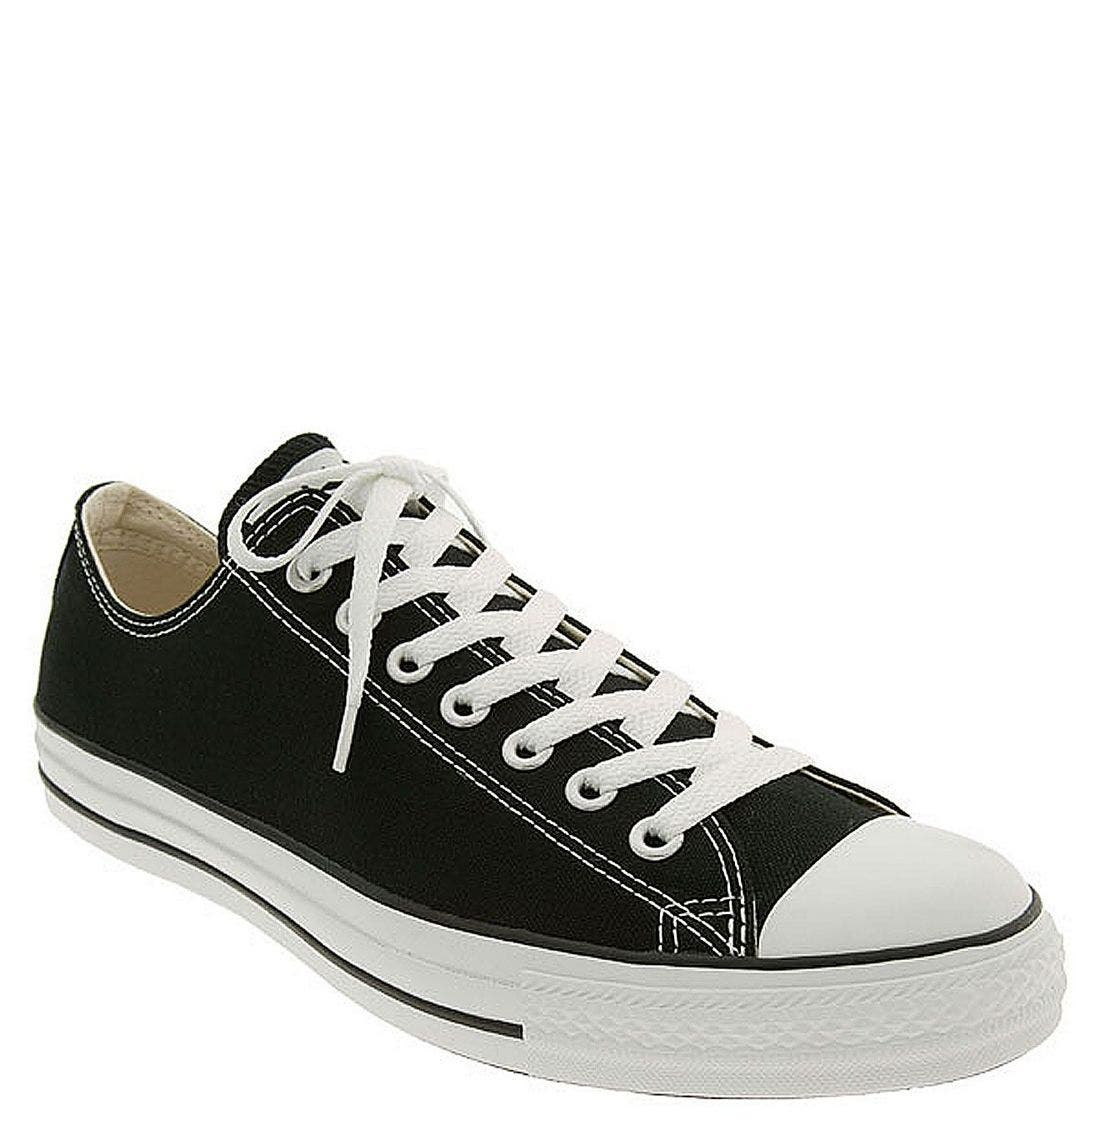 CONVERSE Chuck Taylor<sup>®</sup> Low Top Sneaker, Main, color, 100